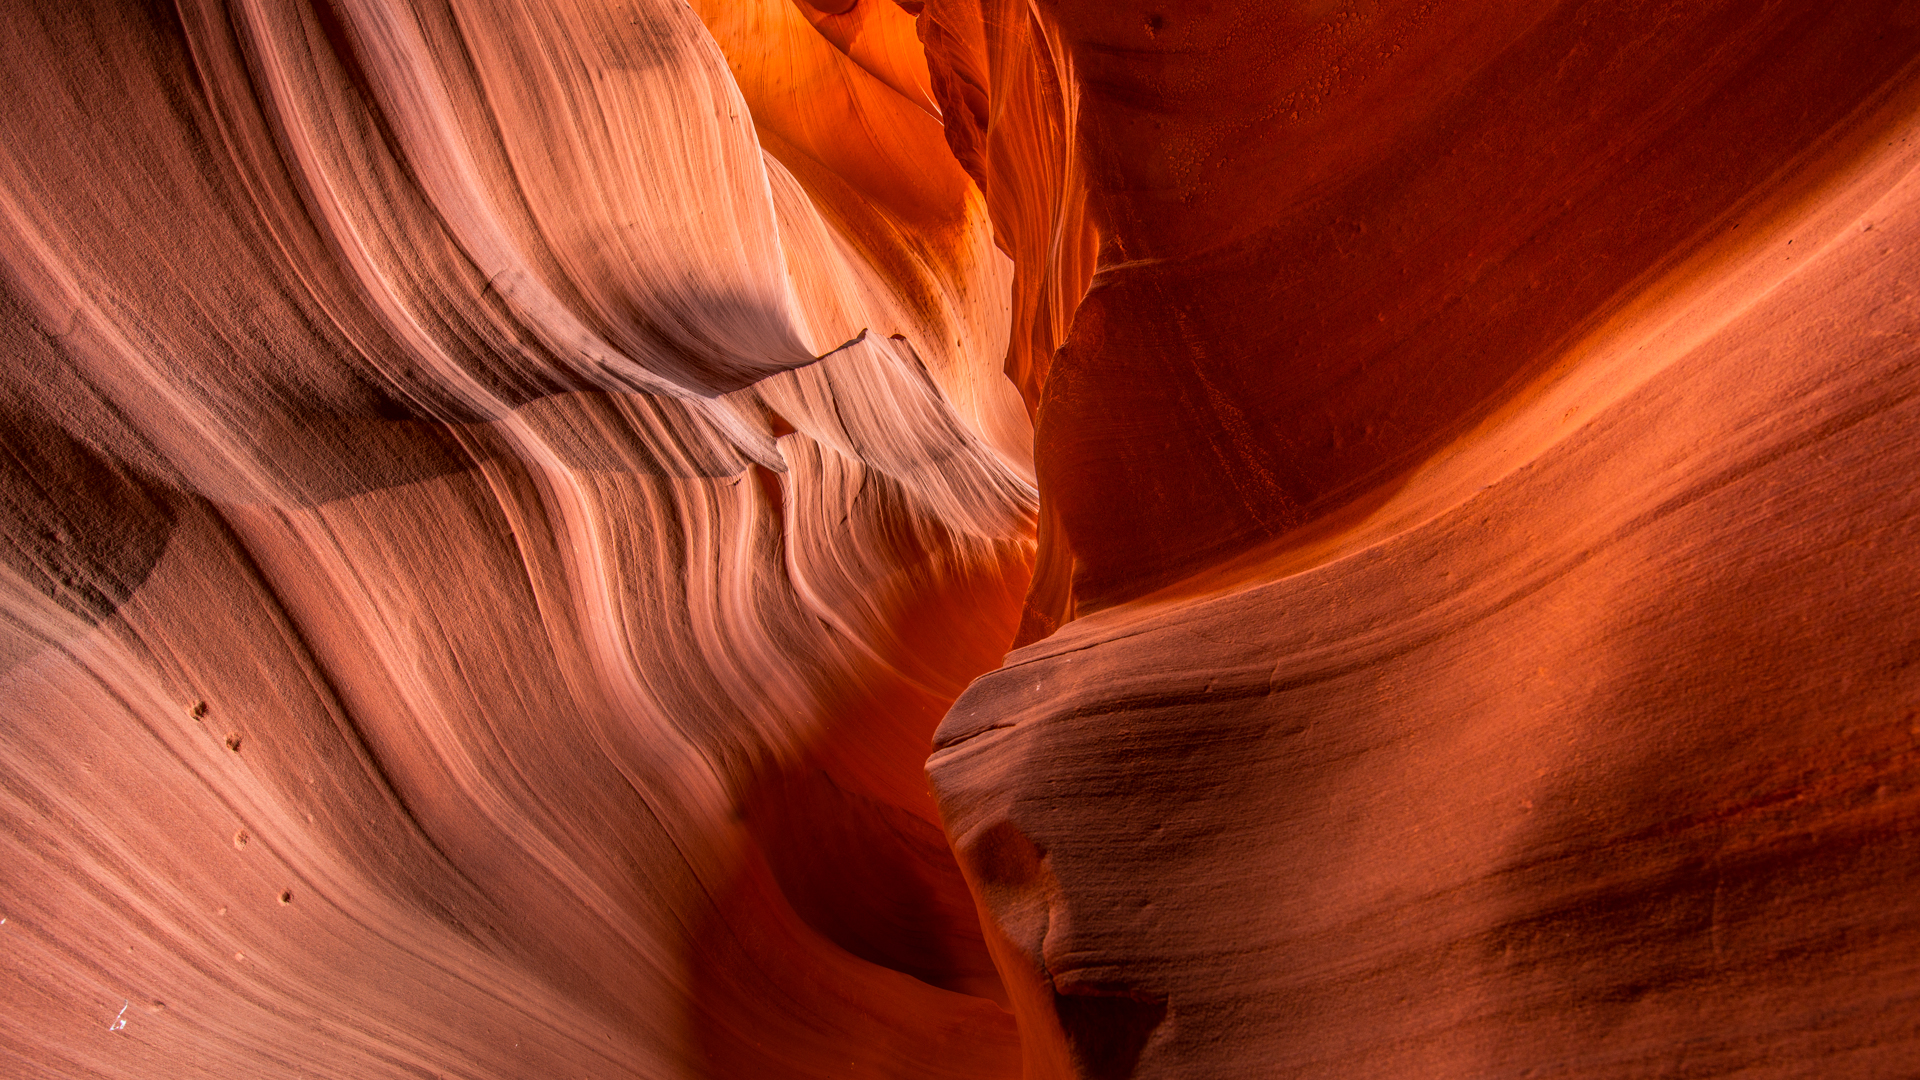 Upper Antelope Canyon, USA